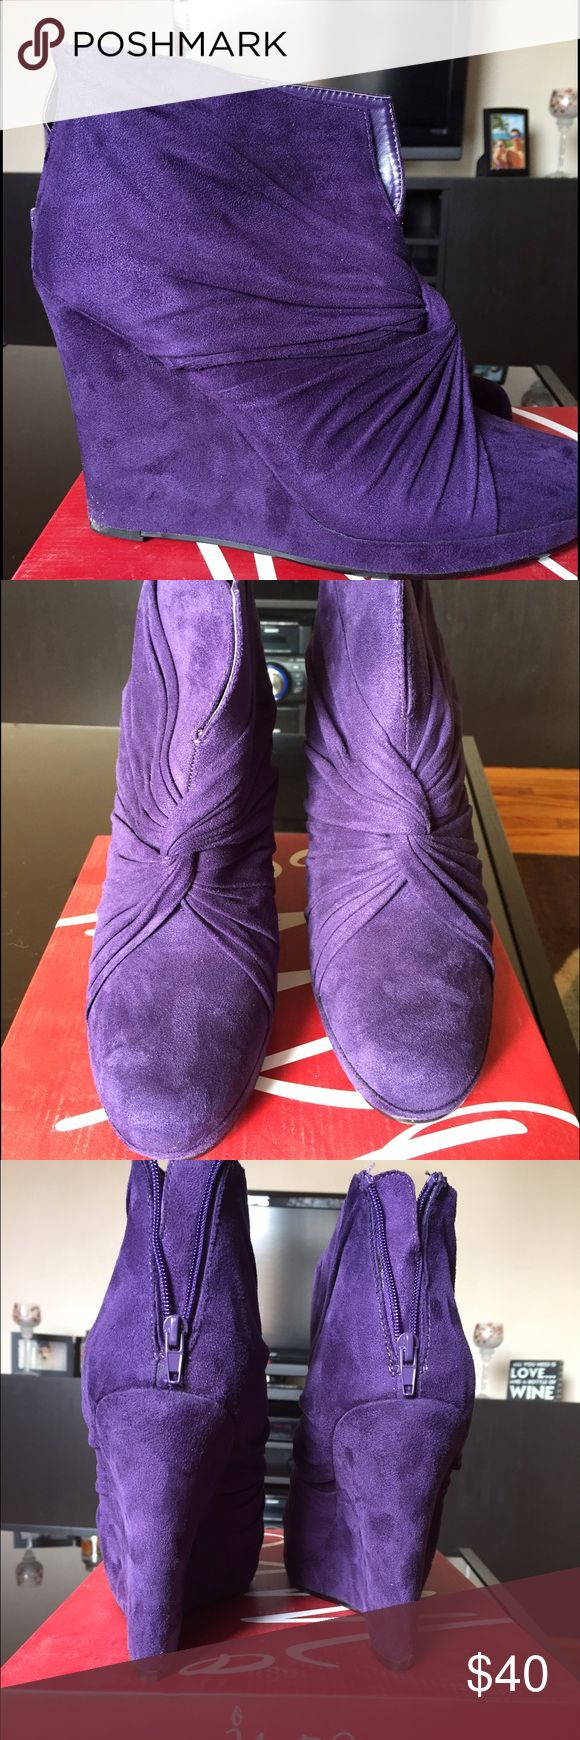 Impo purple ankle boot wedges NWOT IMPO brand velvet purple ankle boots. Wedge style heels. Never worn. Women's size 10. IMPO Shoes Ankle Boots & Booties